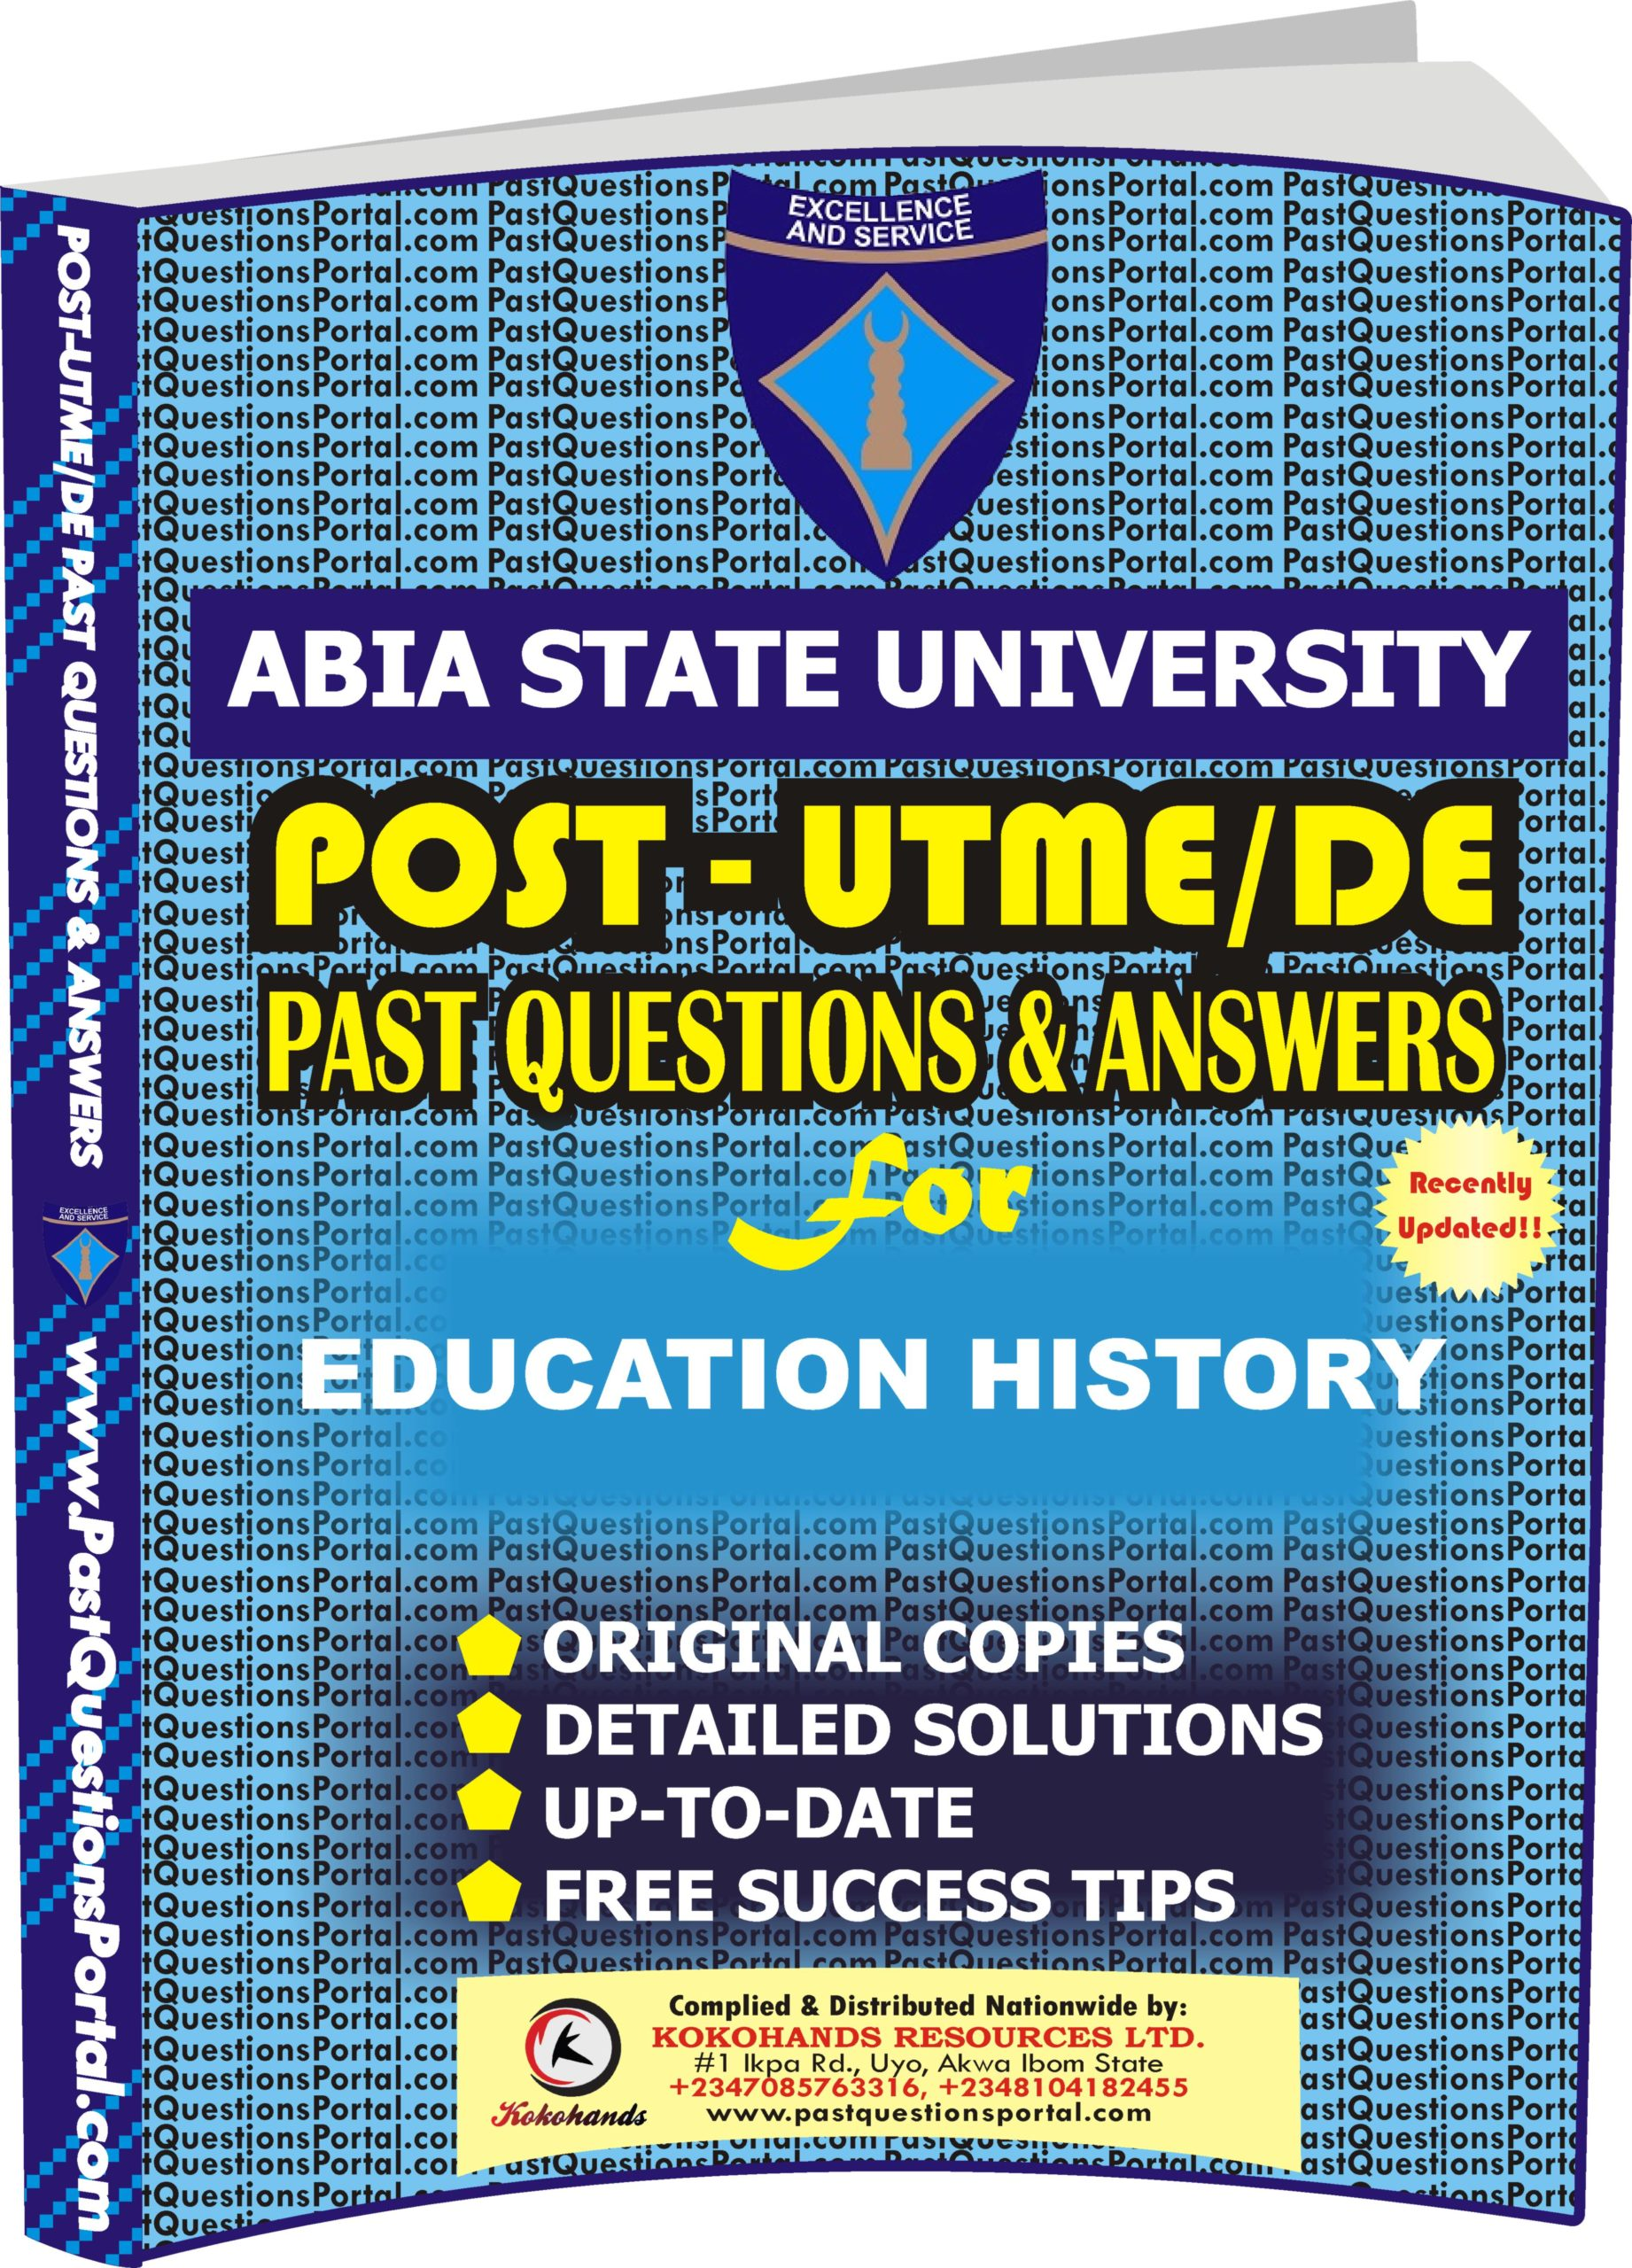 ABSU Post UTME Past Questions for EDUCATION HISTORY